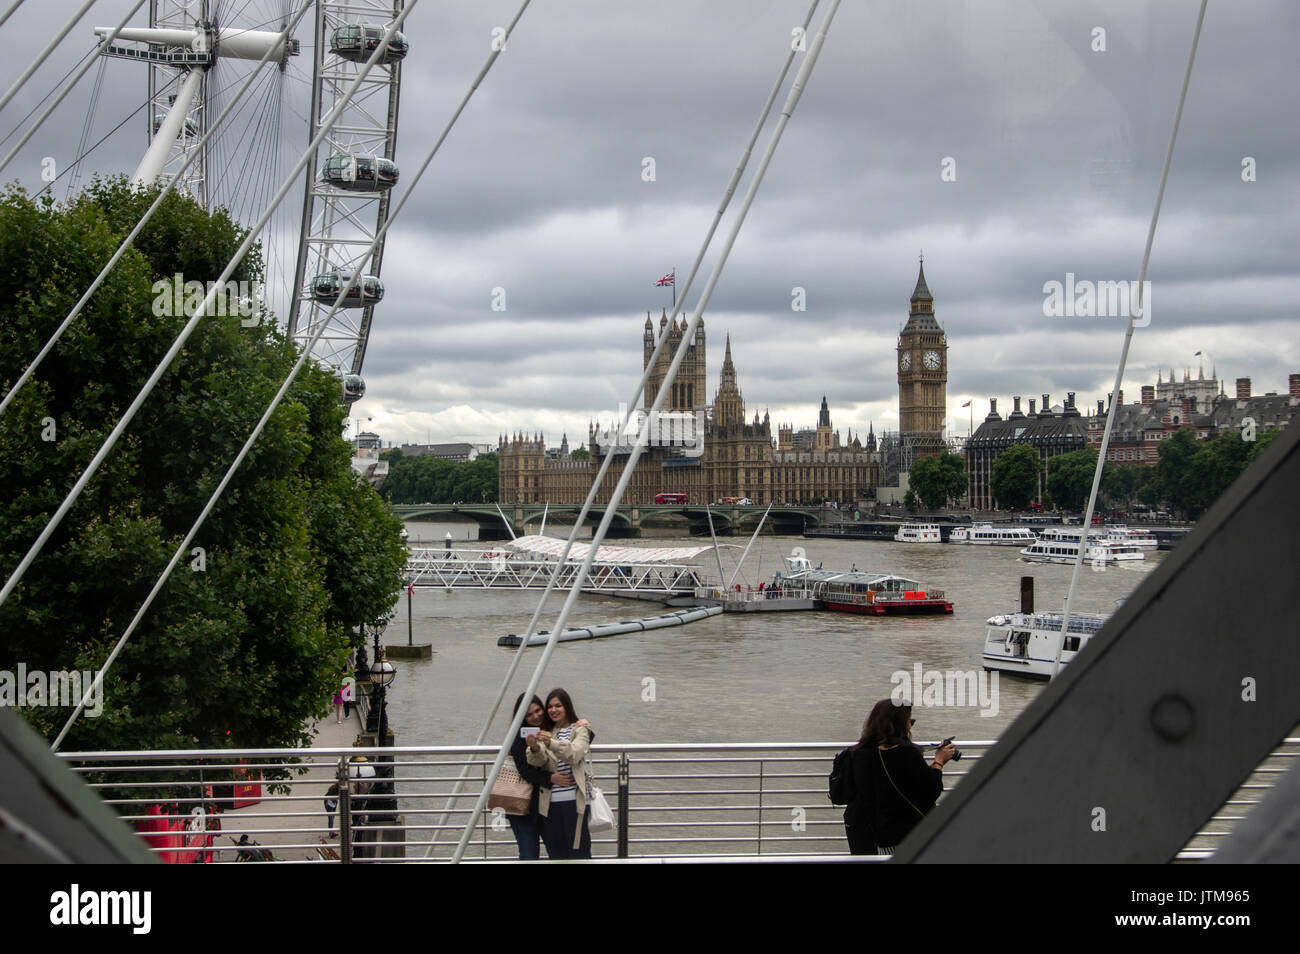 view of the London Eye, Big Ben and Westminster Abbey Houses of Parliament from a train window on one of London's - Stock Image